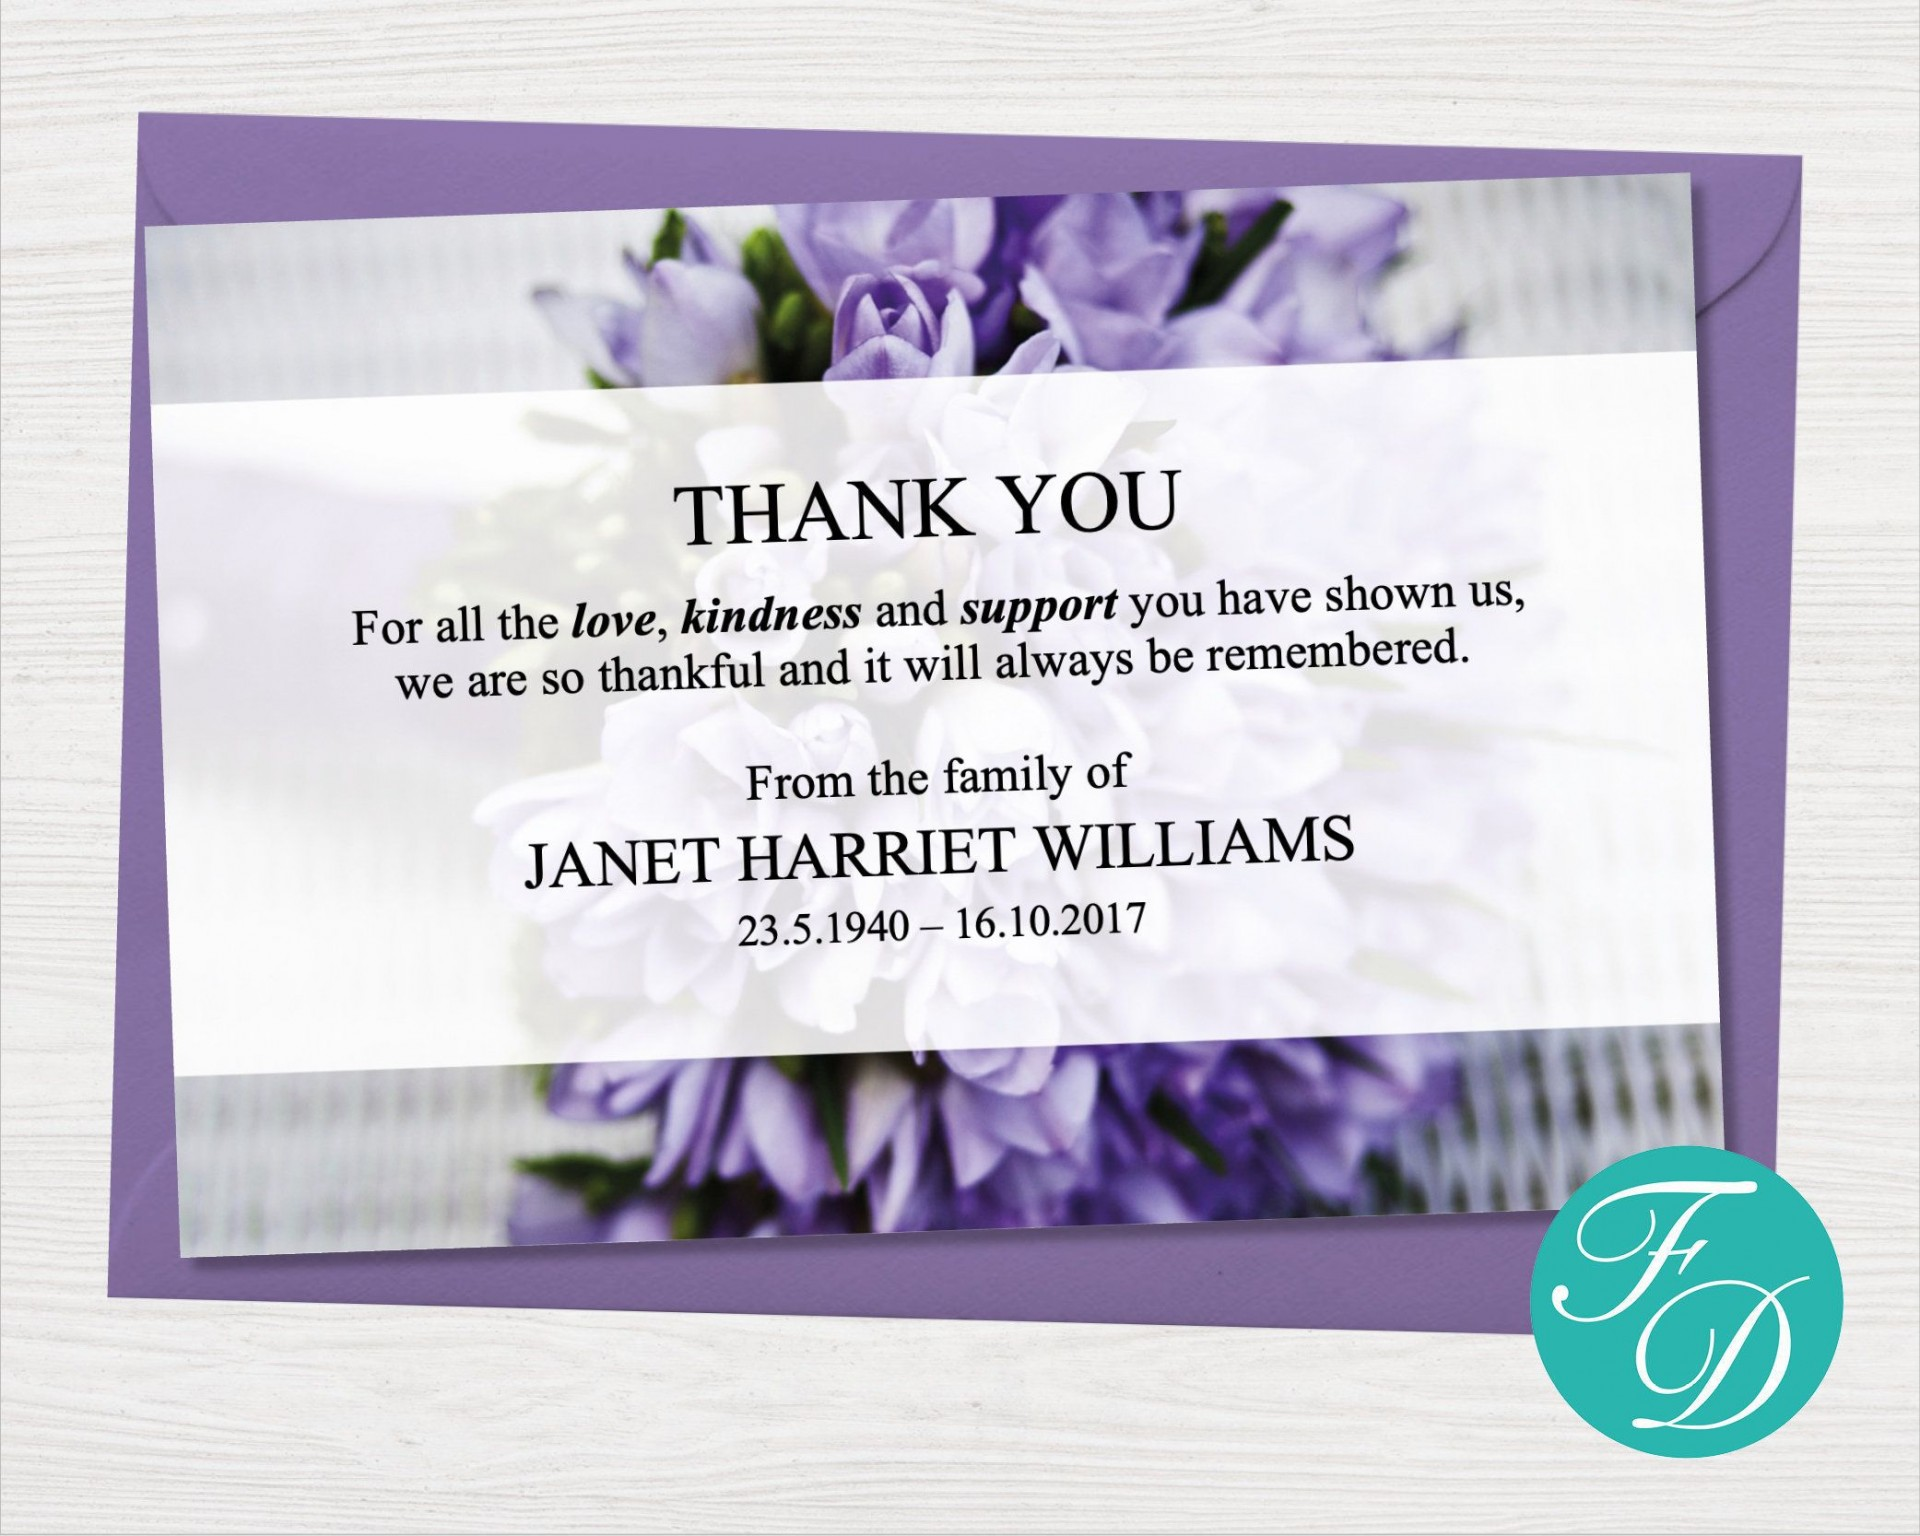 005 Fantastic Thank You Note Template Microsoft Word Example  Card Free Funeral Letter1920